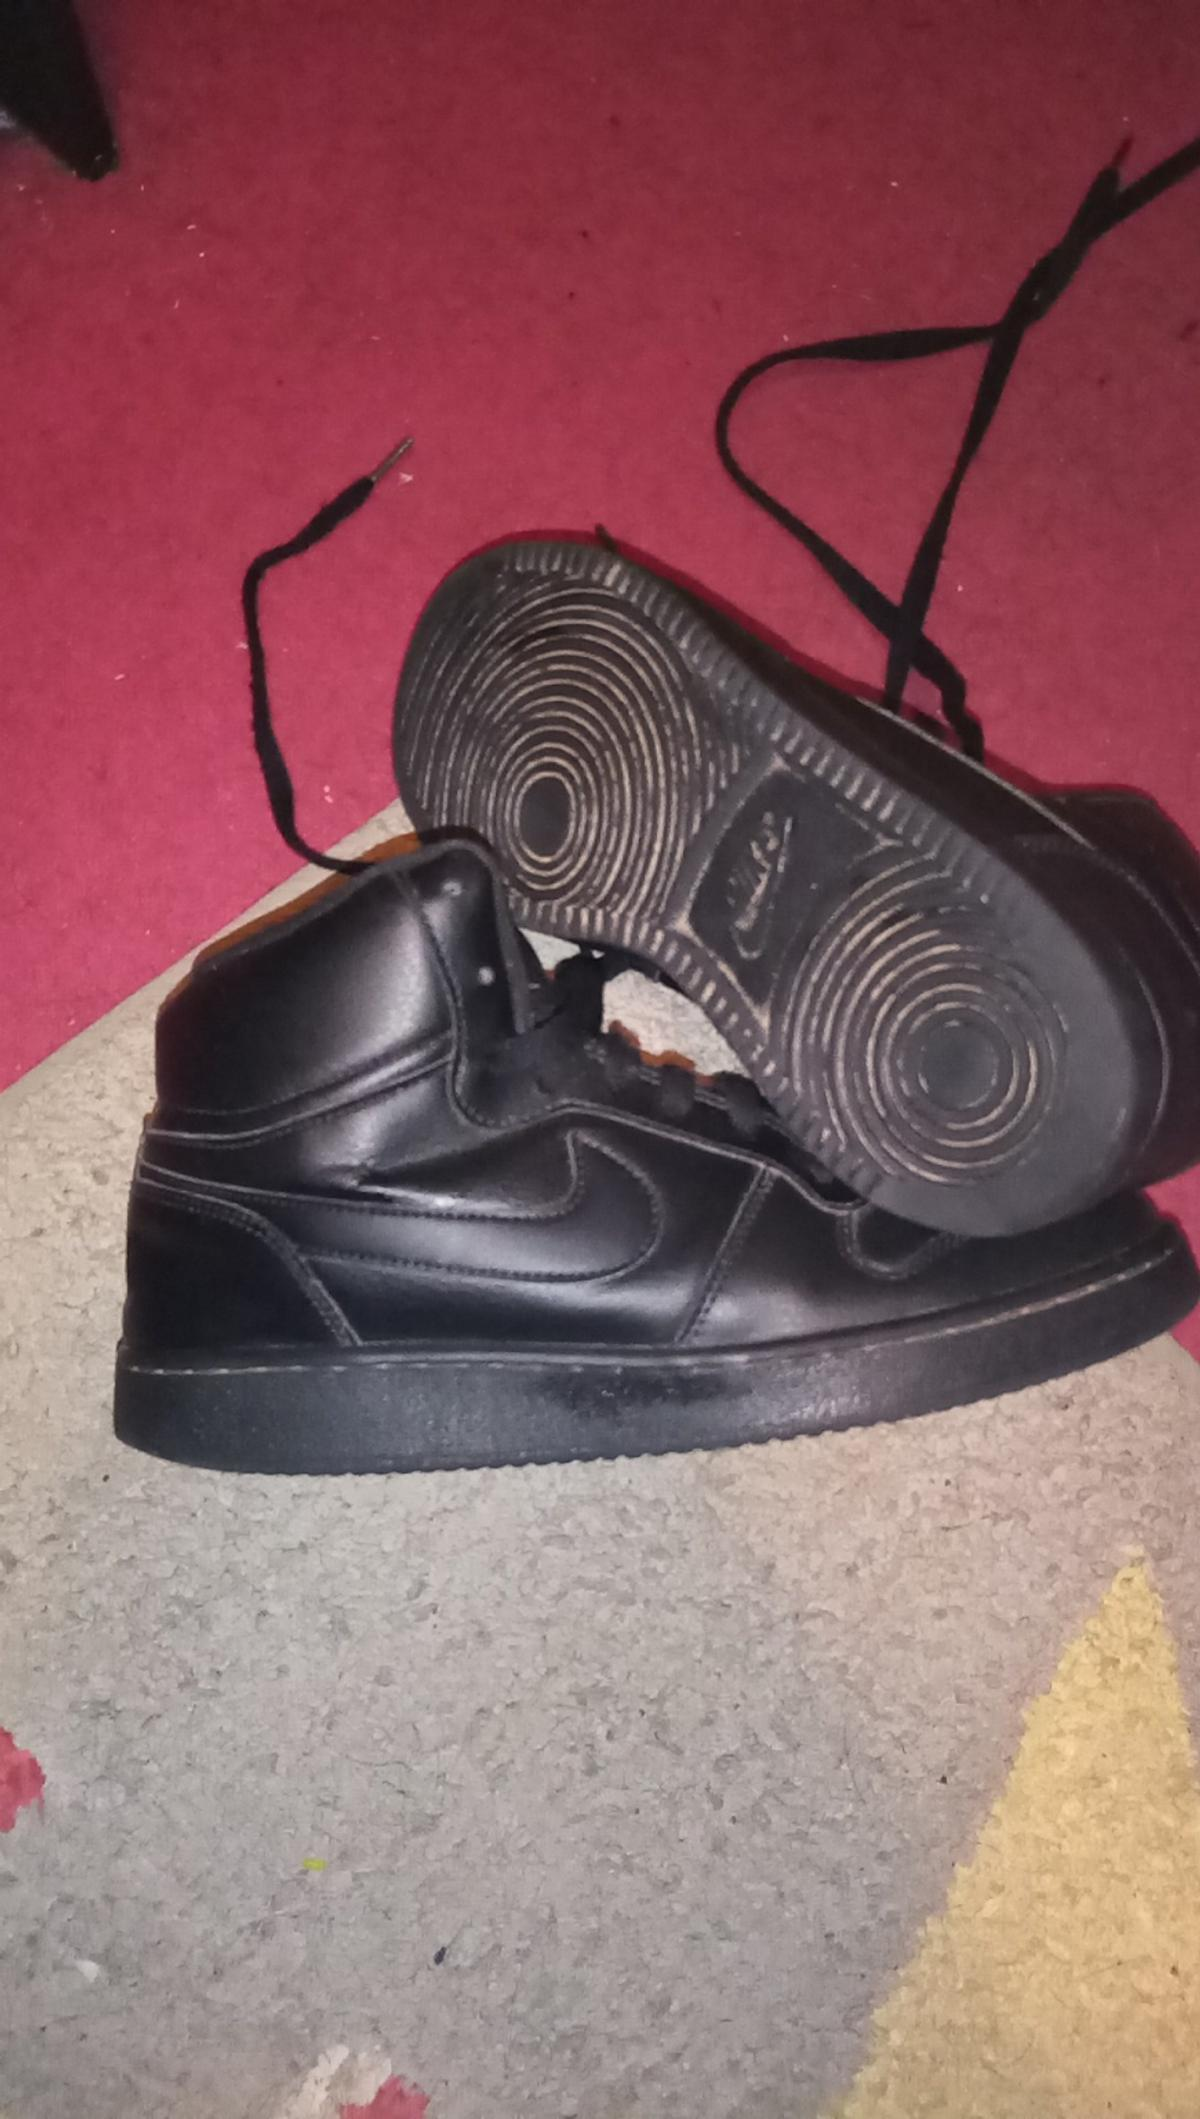 Nike Black hightops good condition Size 6 doesn't come with box Paid £60 from sports direct so want £15 Collection Tipton. Can deliver locally for £2